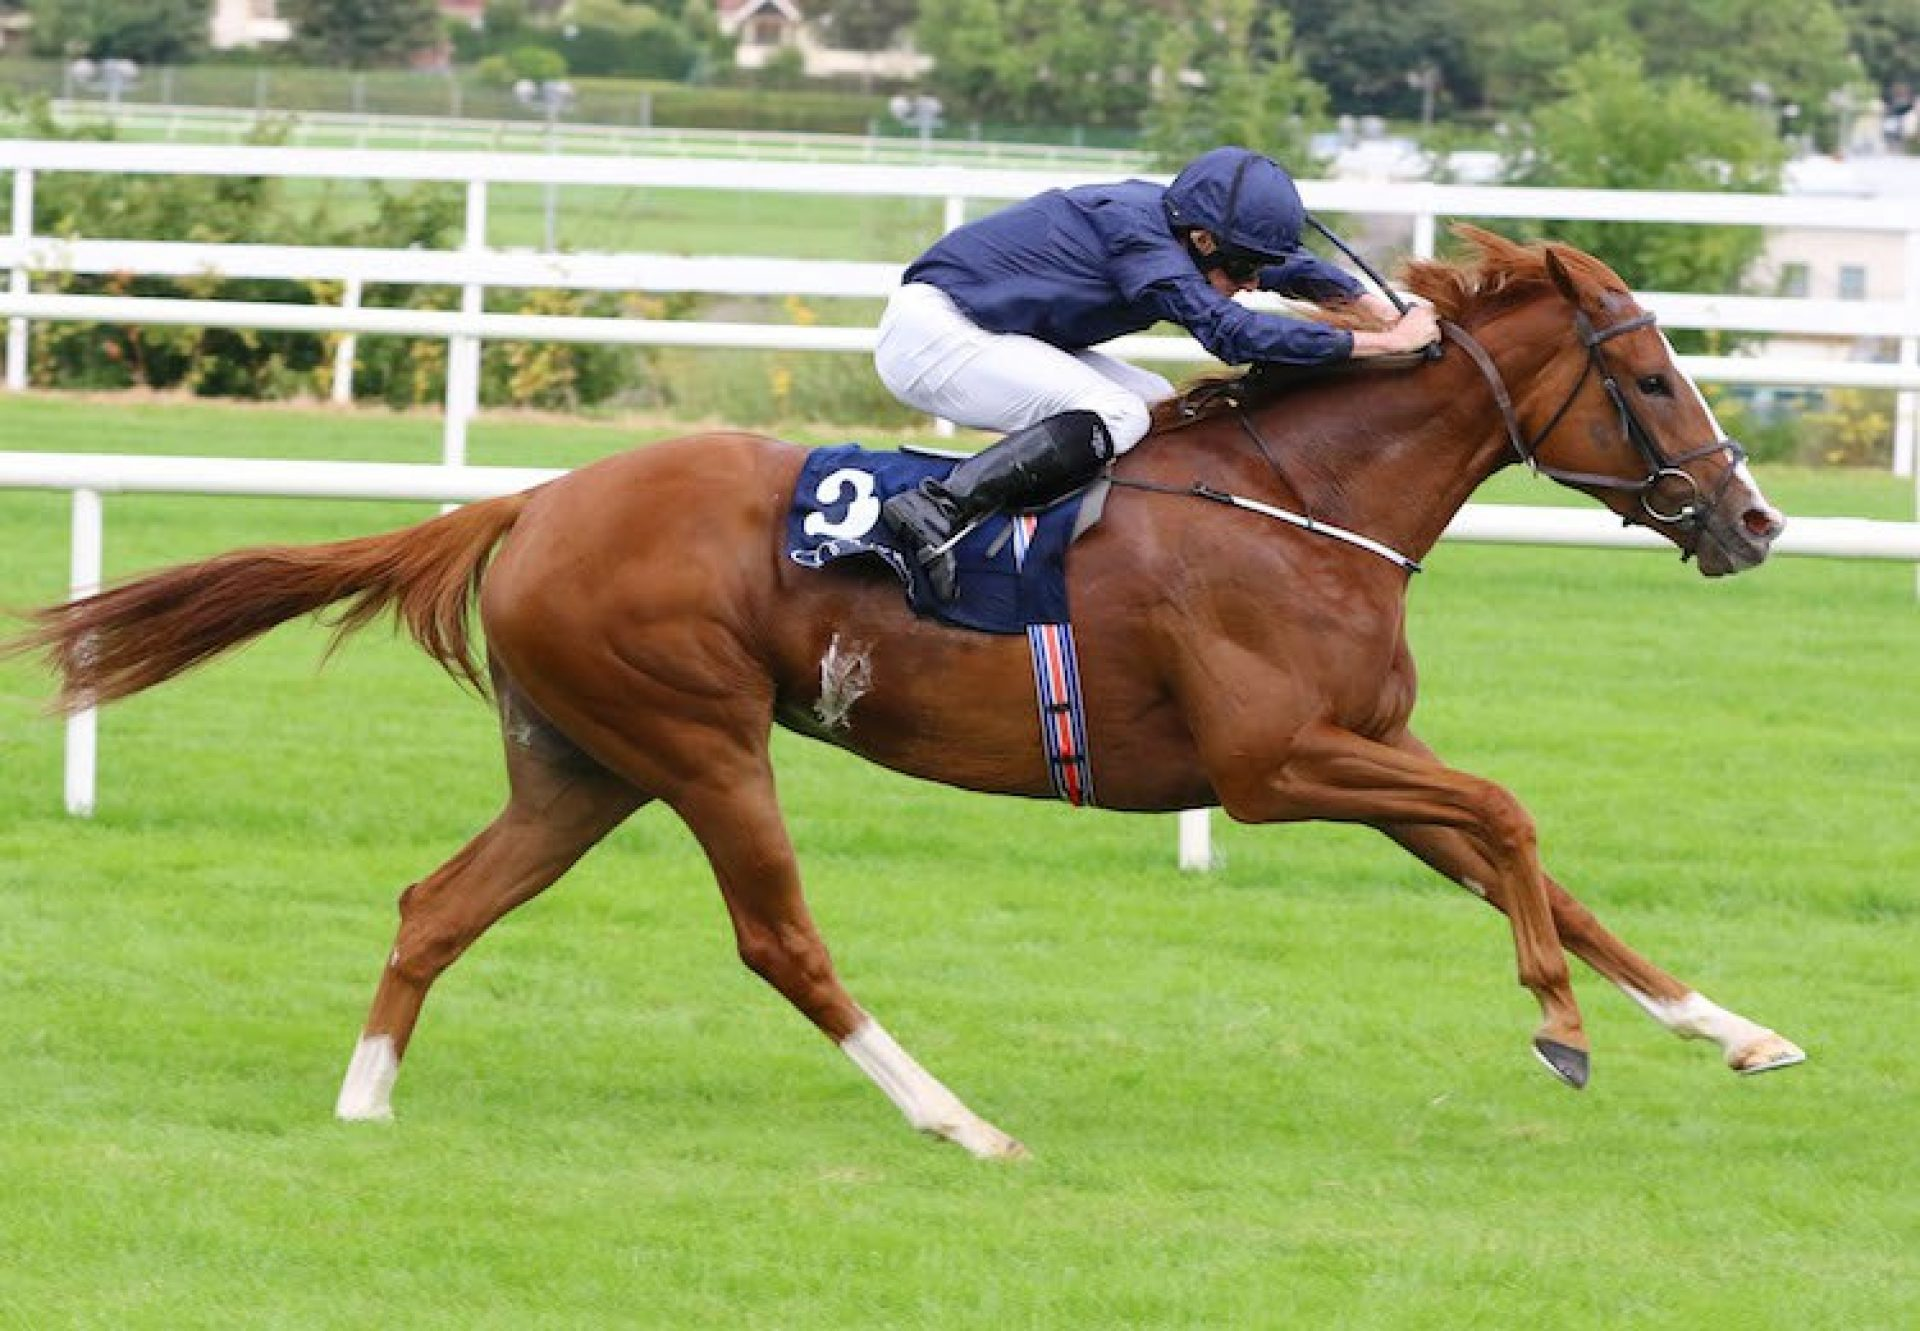 Alice Springs (Galileo) winning the G1 Matron Stakes at Leopardstown